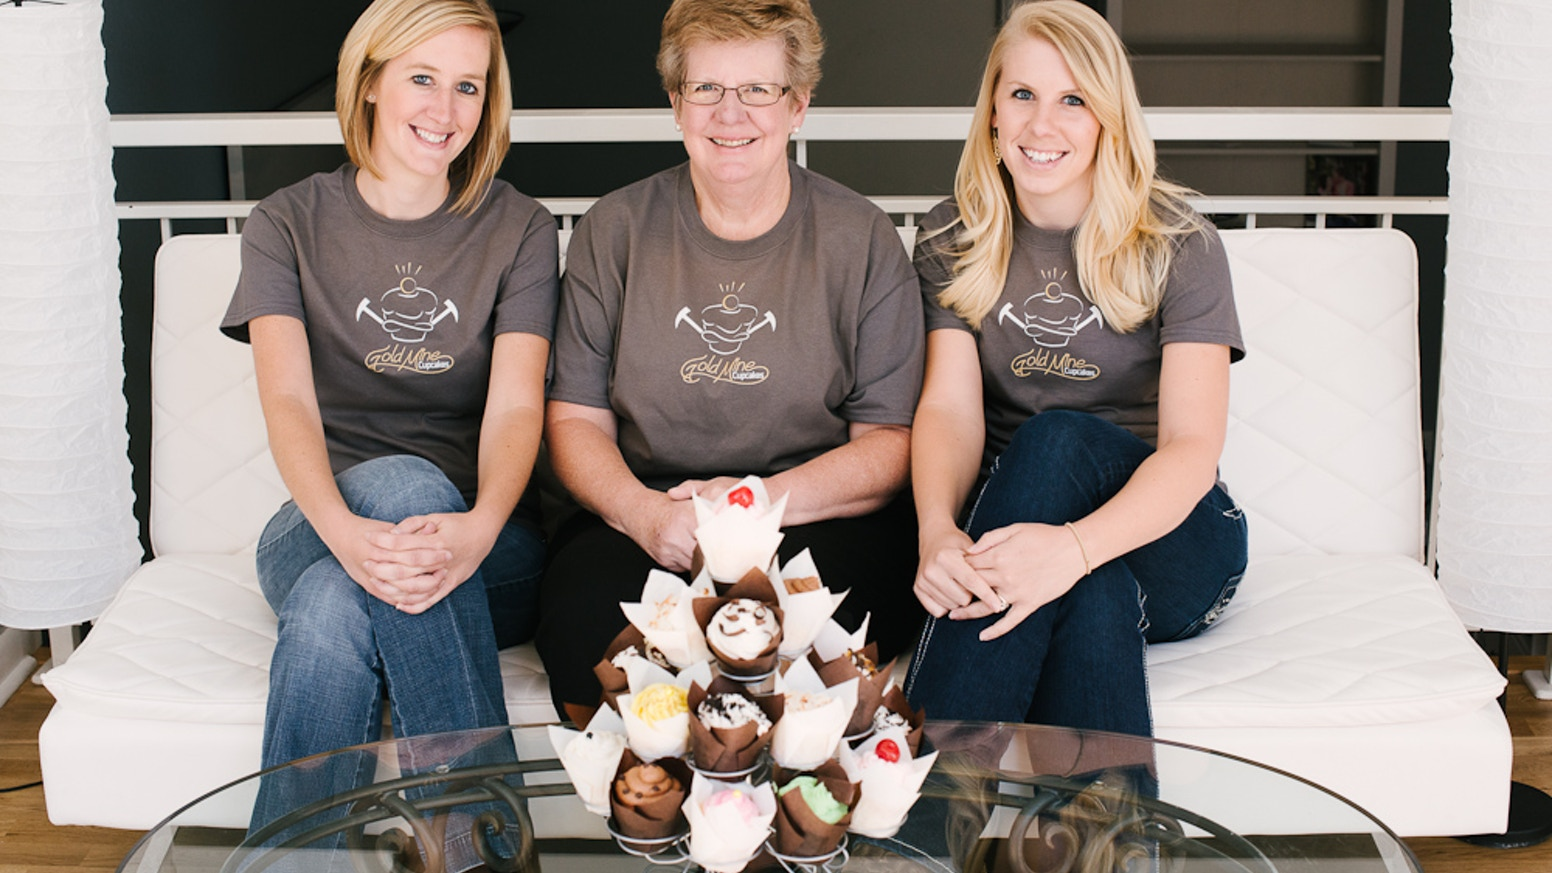 Gold Mine Cupcakes - Retail Location in Golden,CO by Sara ...